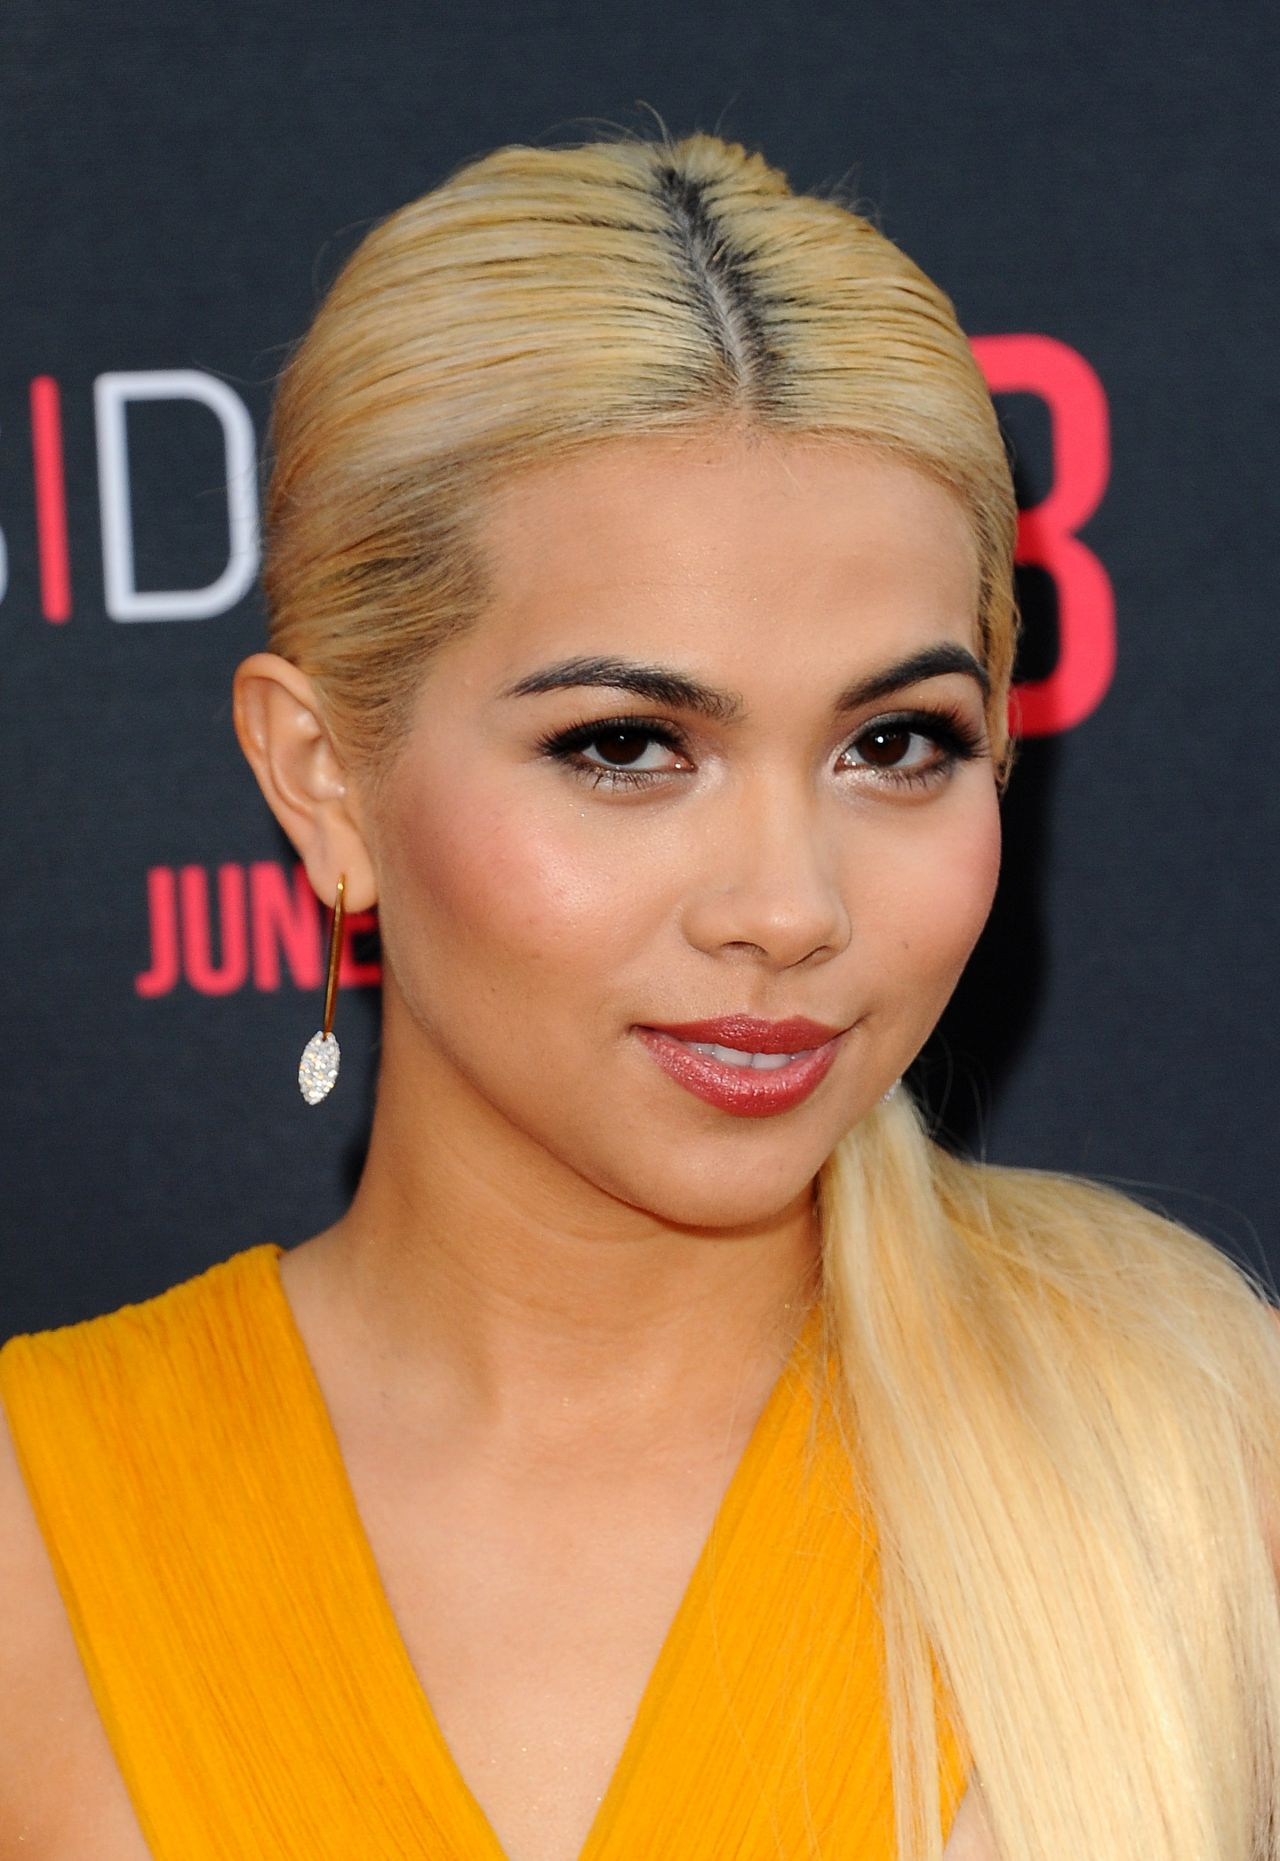 Hayley Kiyoko Insidious Chapter 3 Premiere At The Tcl